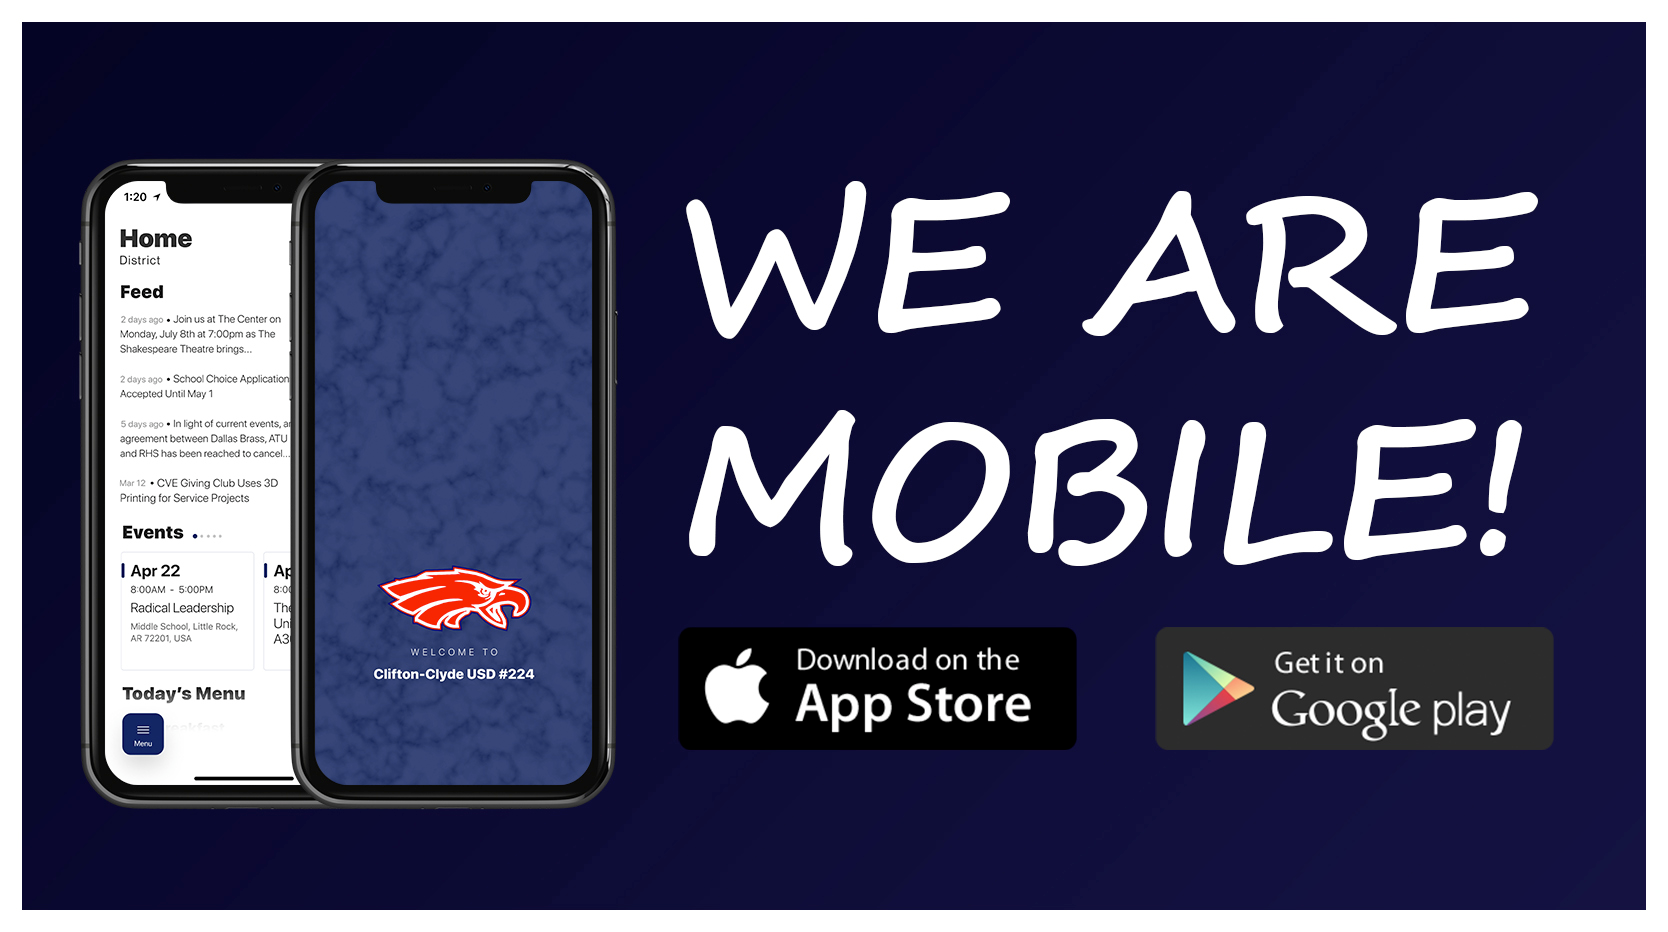 We are mobile! Download on the App Store or Get it on Google Play